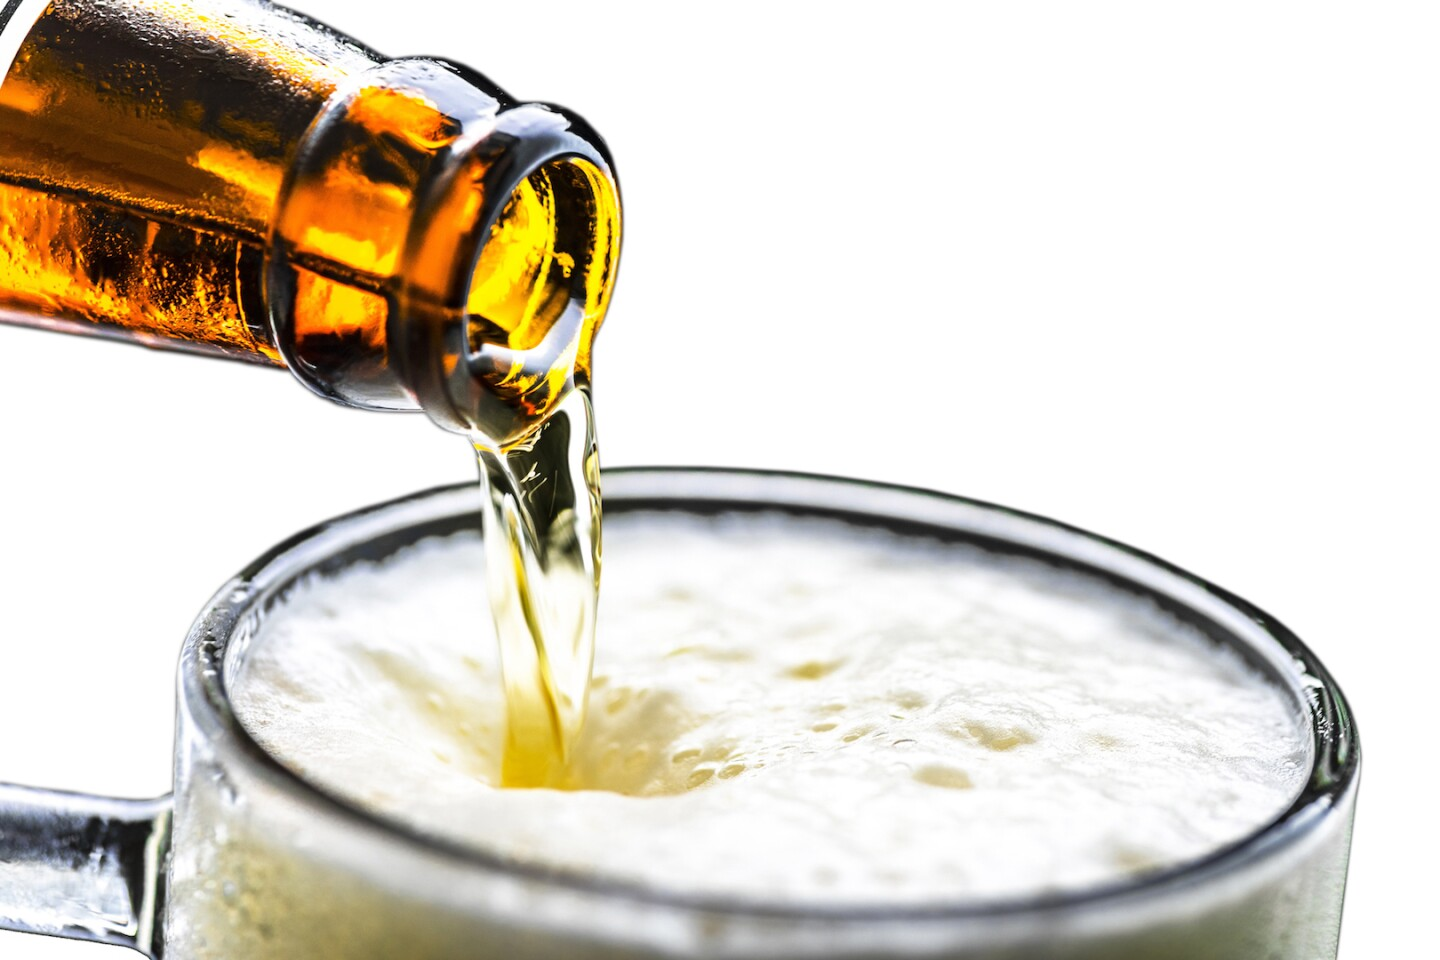 Pouring beer from bottle to glass | Credit: sezer ozger, iStock